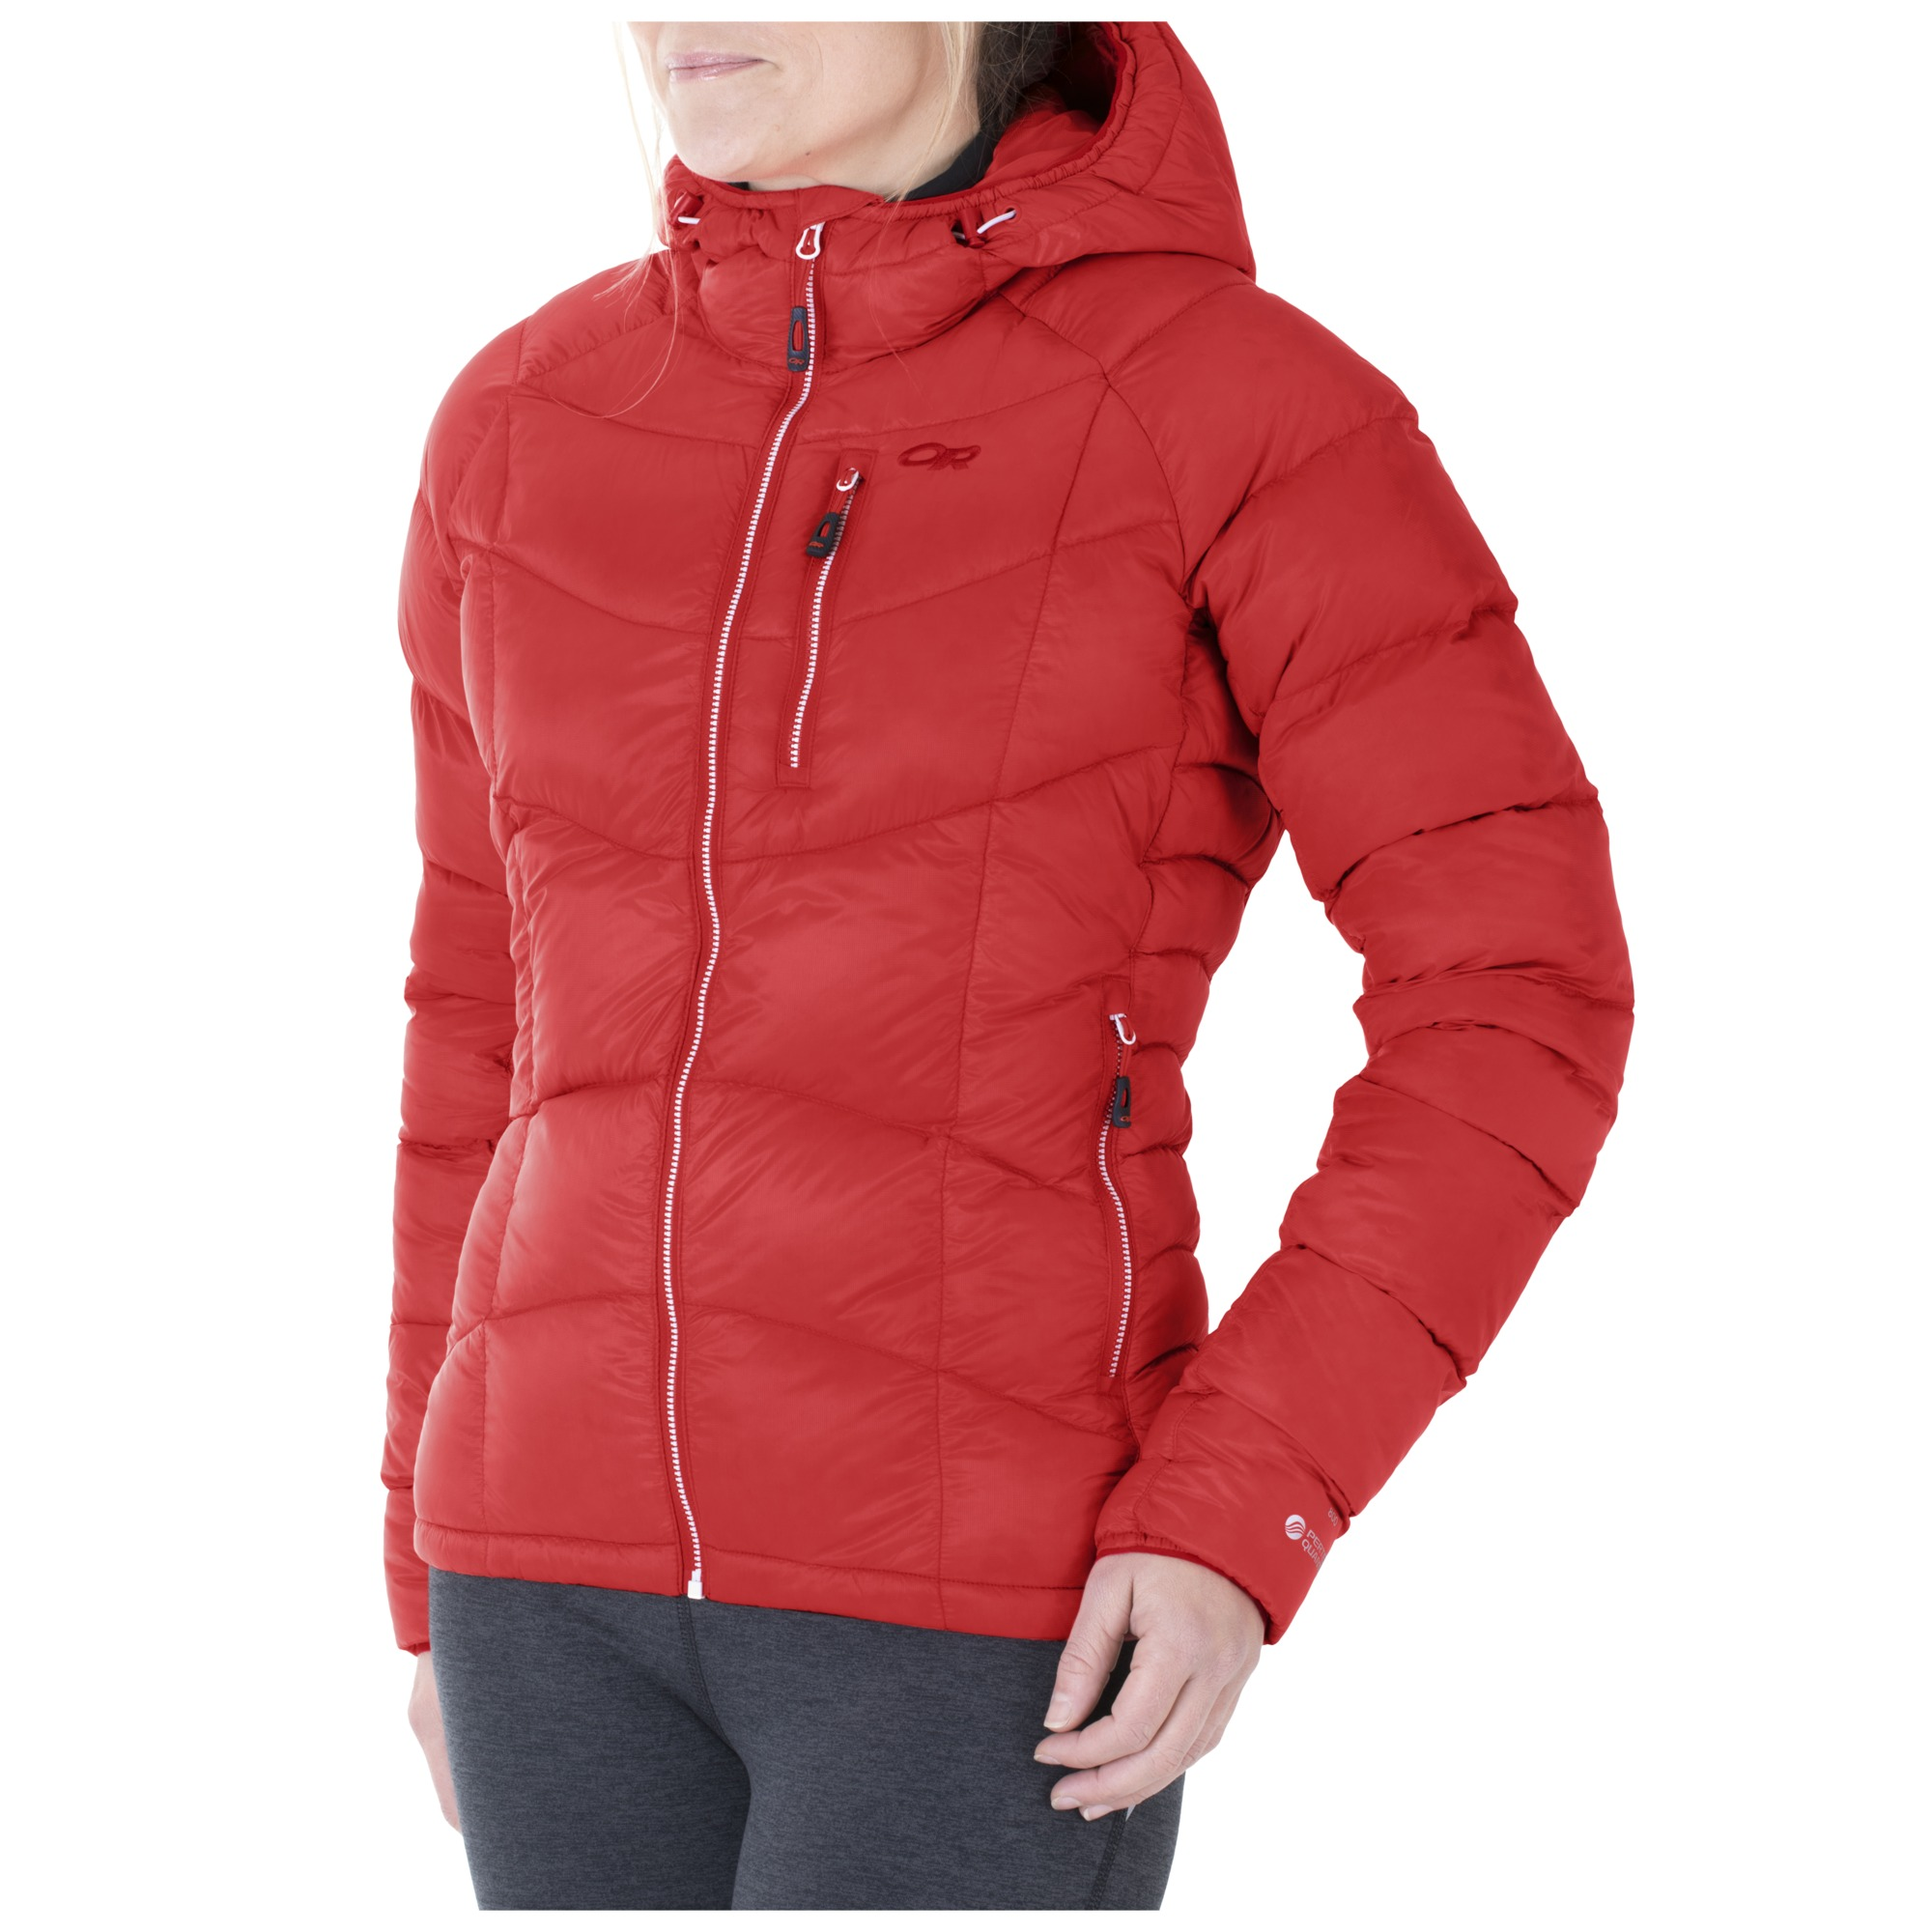 Women's Sonata Ultra Hooded Down Jacket™ - flame/scarlet | Outdoor ...